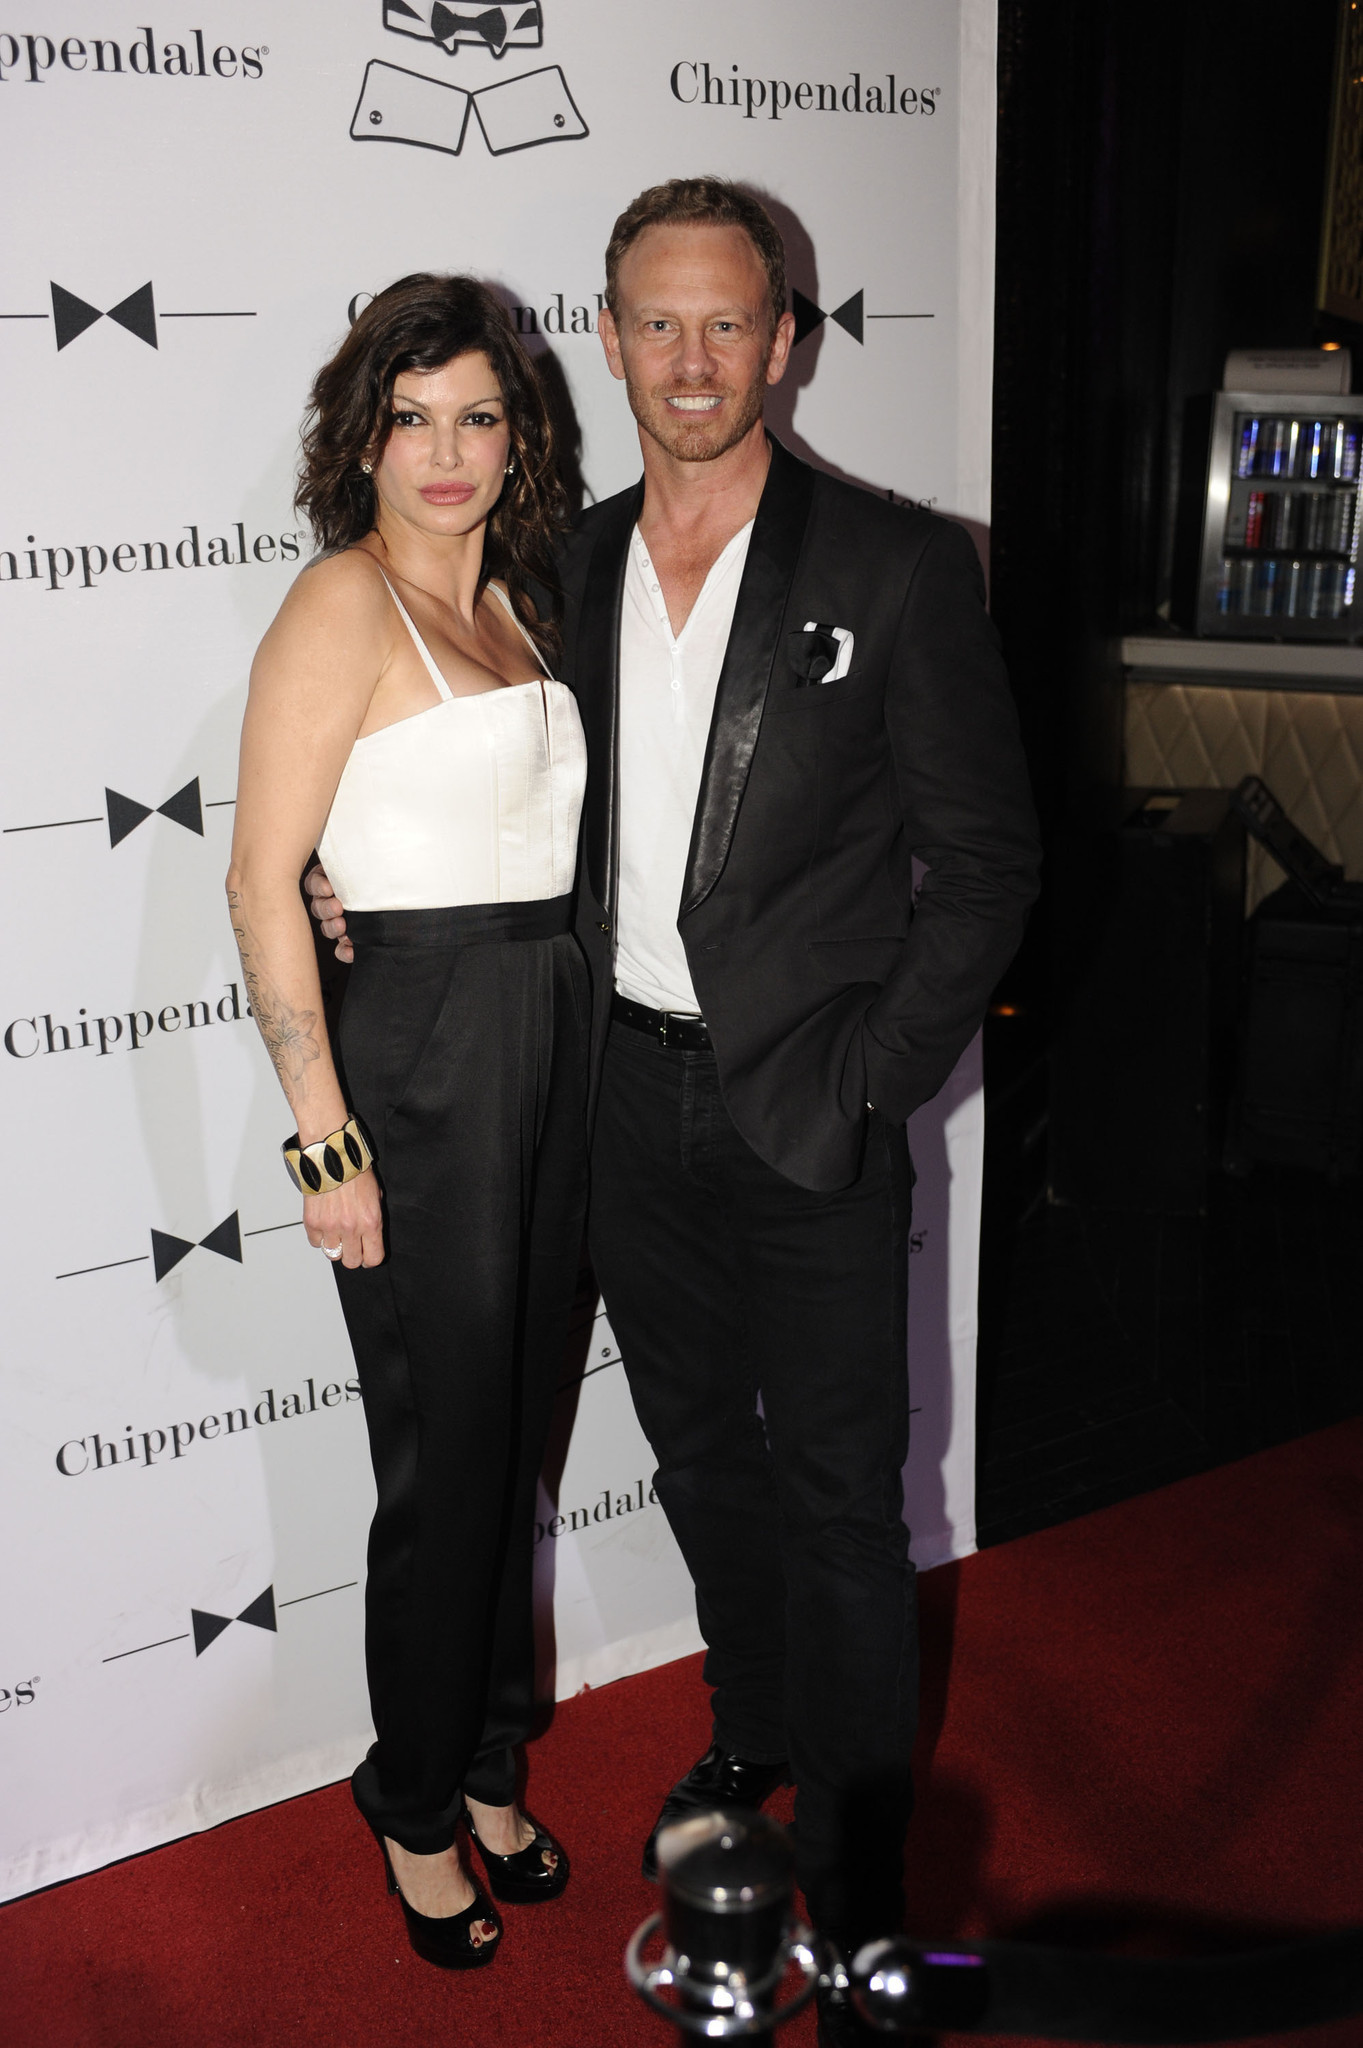 Chippendales open in Miami Beach - Carla Pellegrino and Ian Ziering